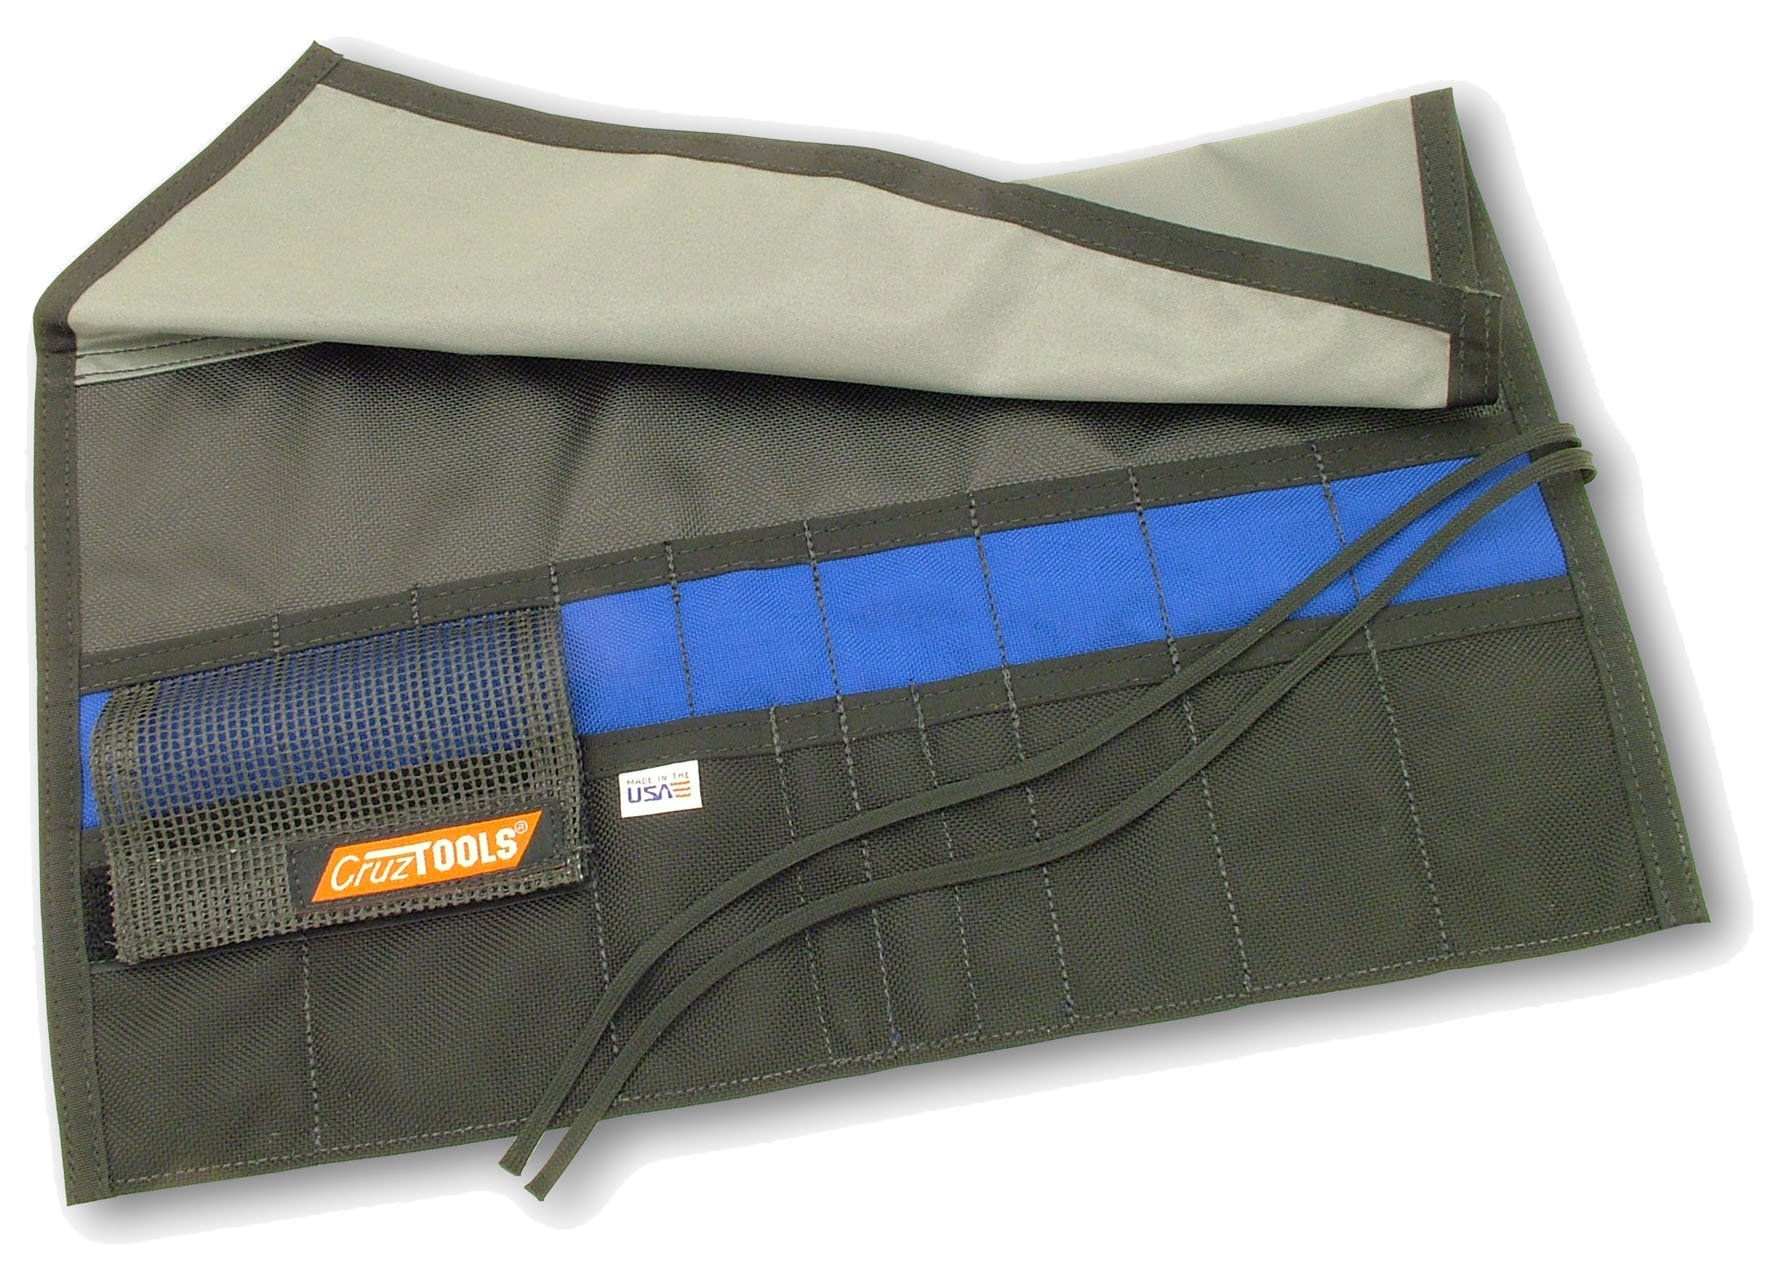 Cruztools (TPOUCH1 Roll-Up Tool Pouch